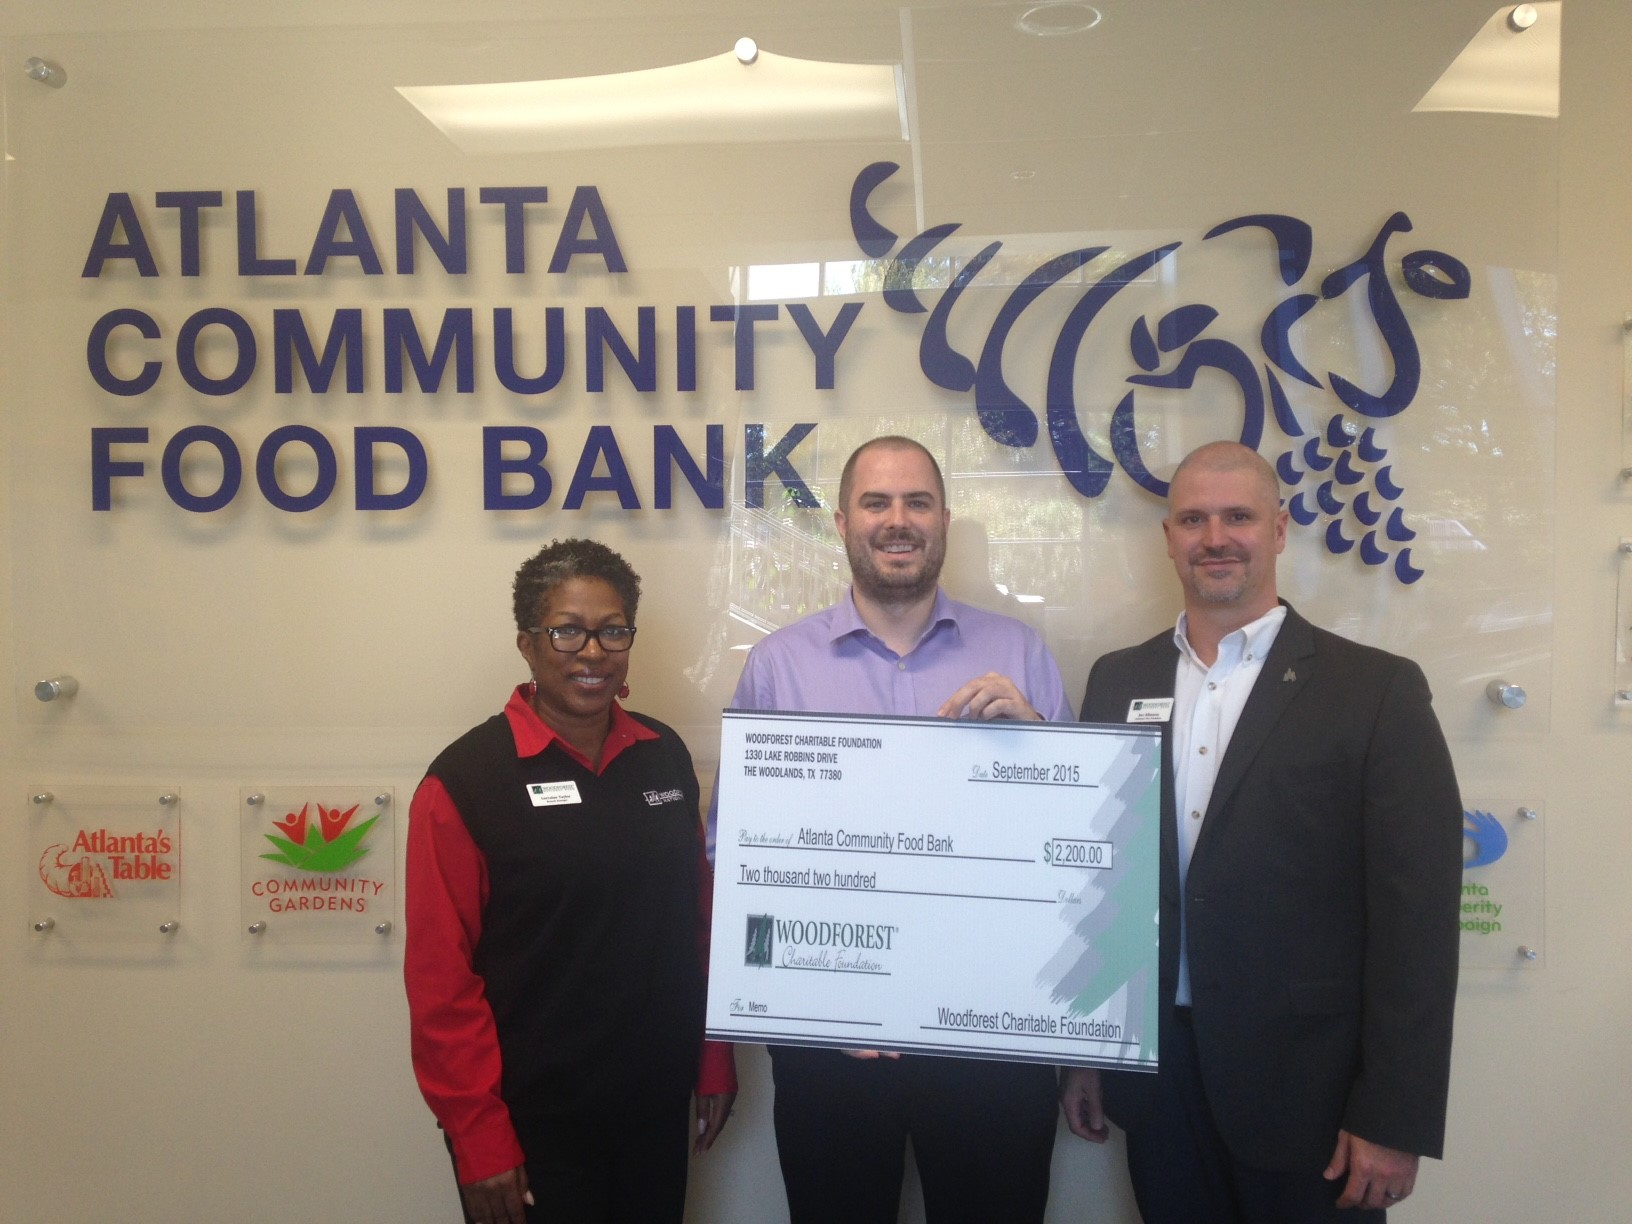 Atlanta Community Food Bank receives a $1,800 donation from WCF.